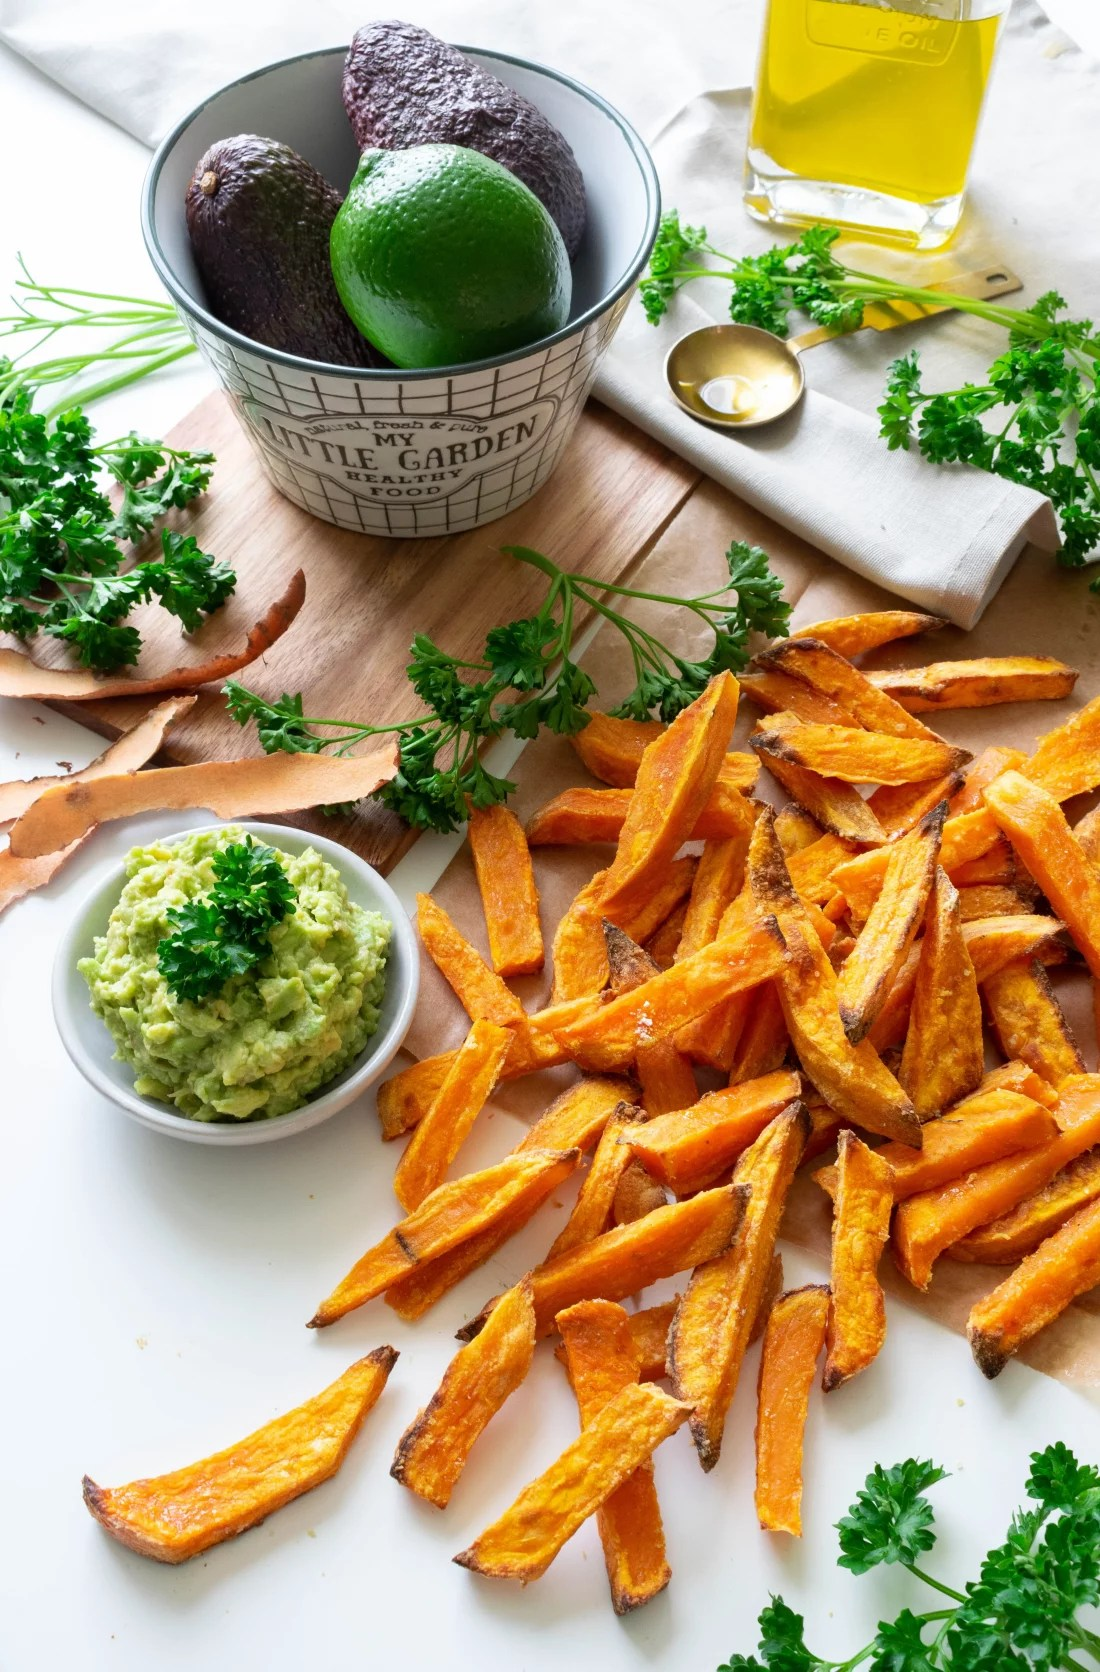 FRITES DE PATATE DOUCE - Healthy Clemsy